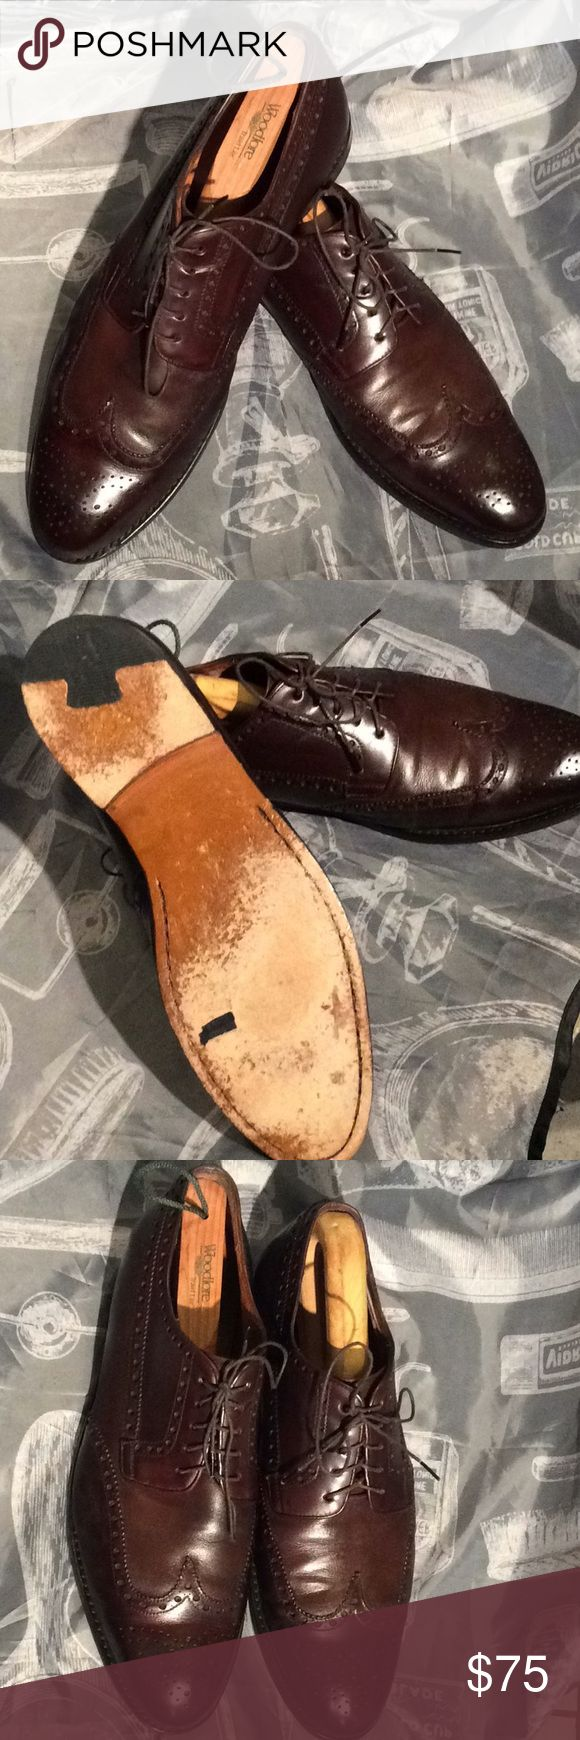 Size 11 Magnanni wing-tip Men's dress shoes Very nice Magnanni dark brown wi...